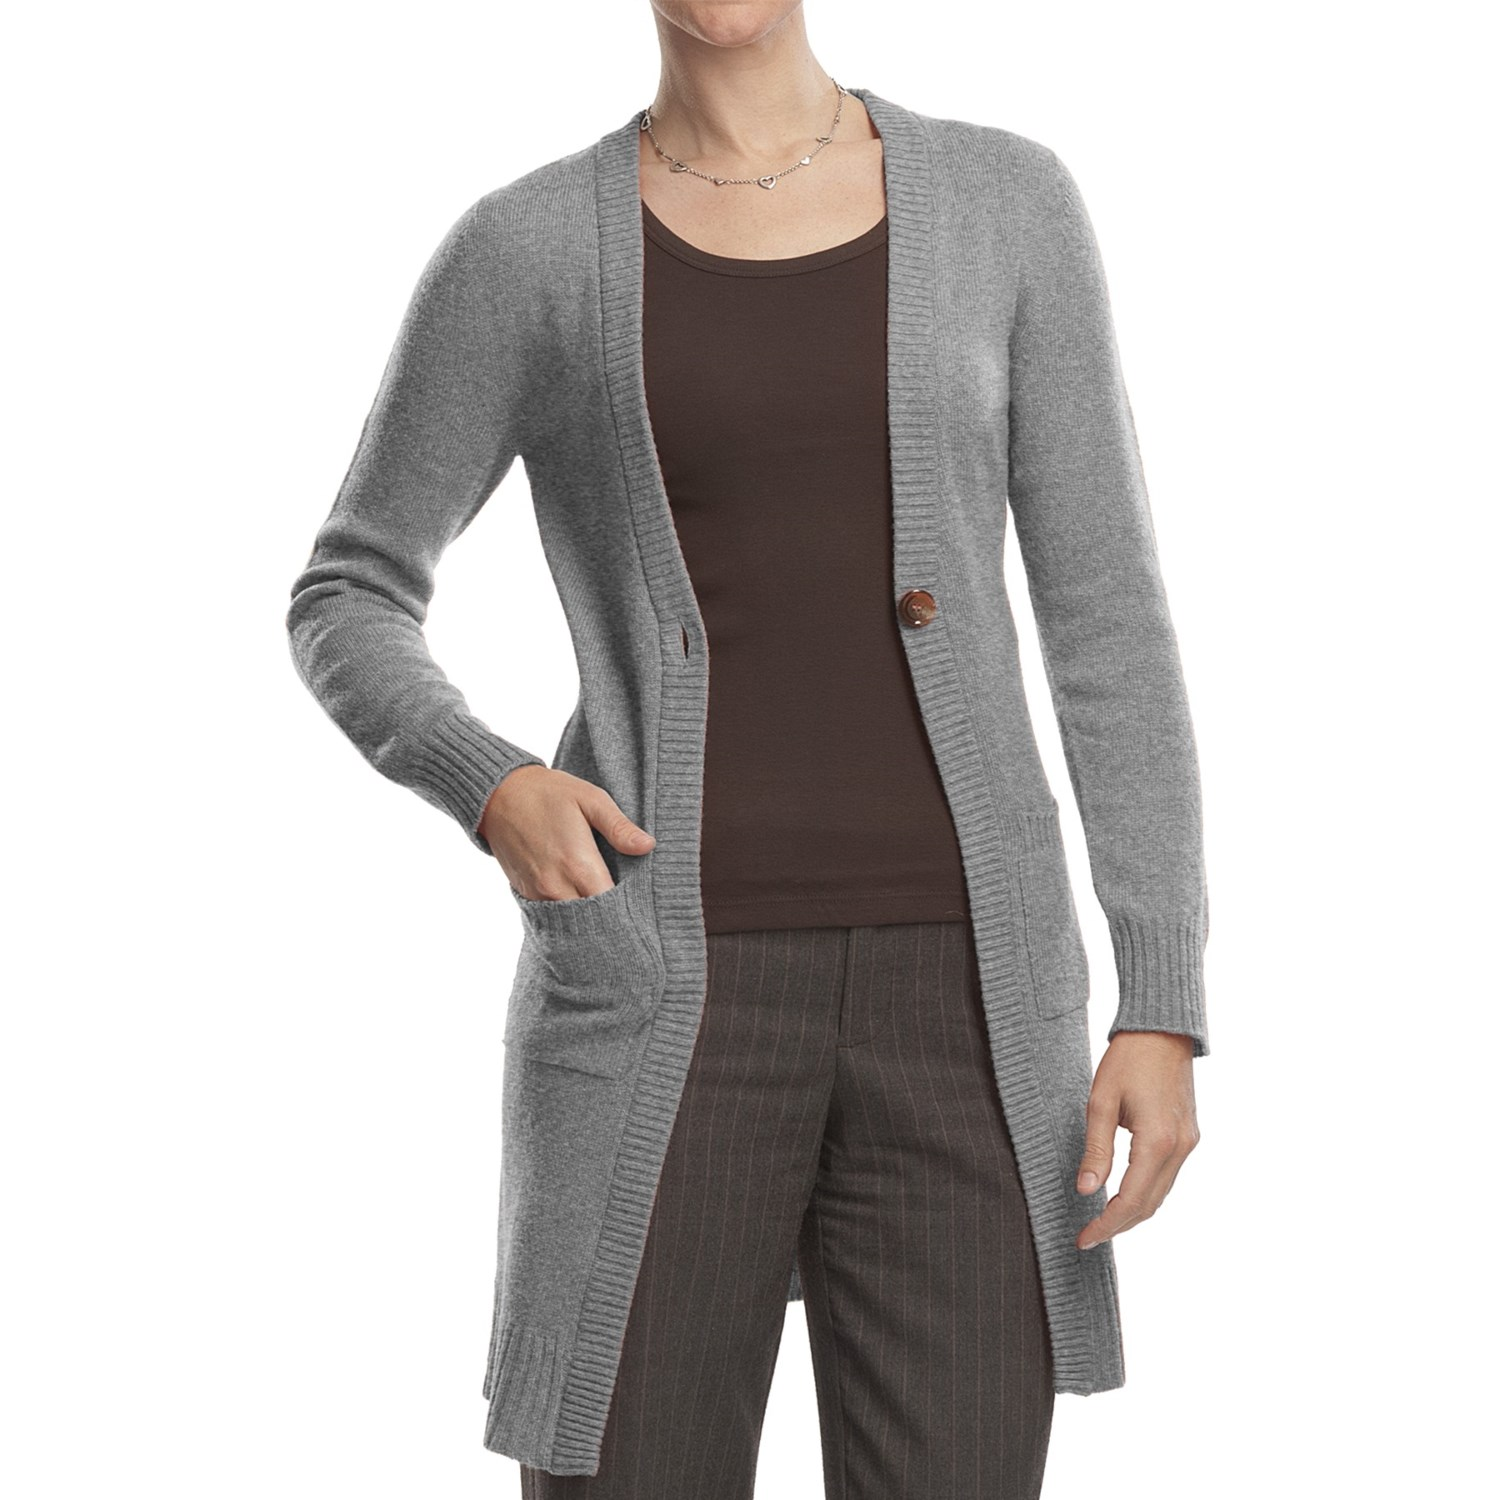 Architect® long sleeve basic ribbed knit cardigan, with a button front closure and crew neck, is the perfect layering piece. Easy to pair with denim jeans, or classic pull .